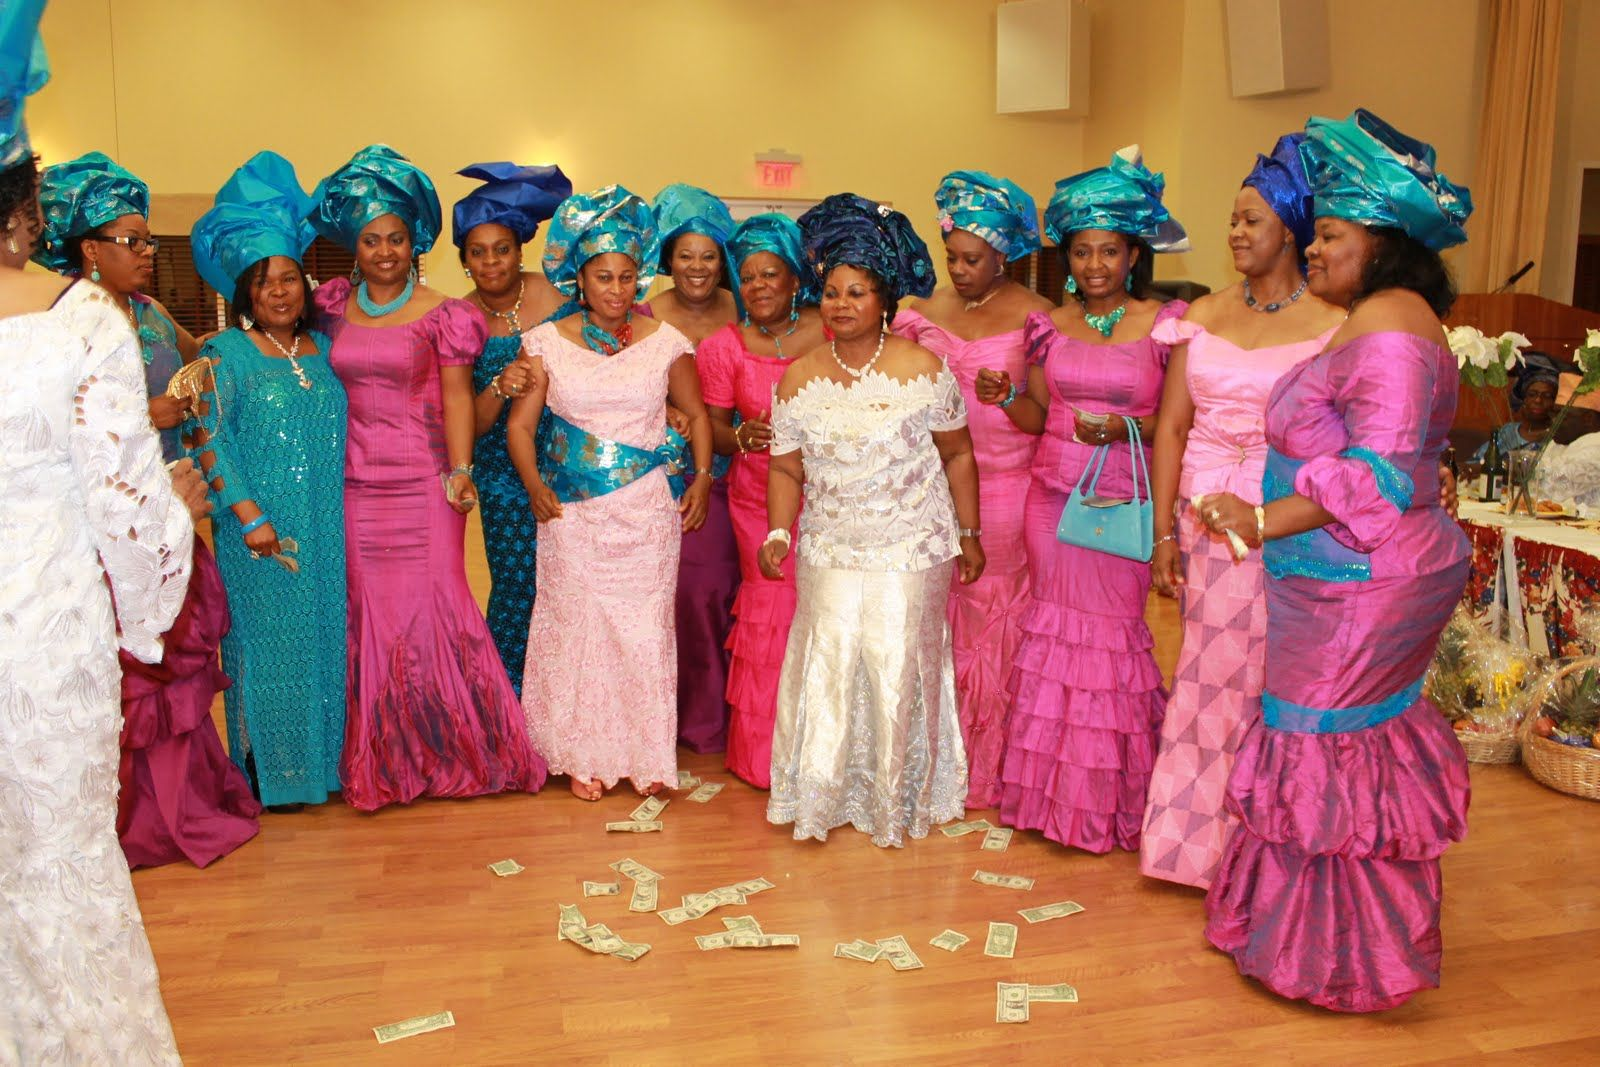 Nigerian Dress - Ask.com Image Search | classy and sassy | Pinterest